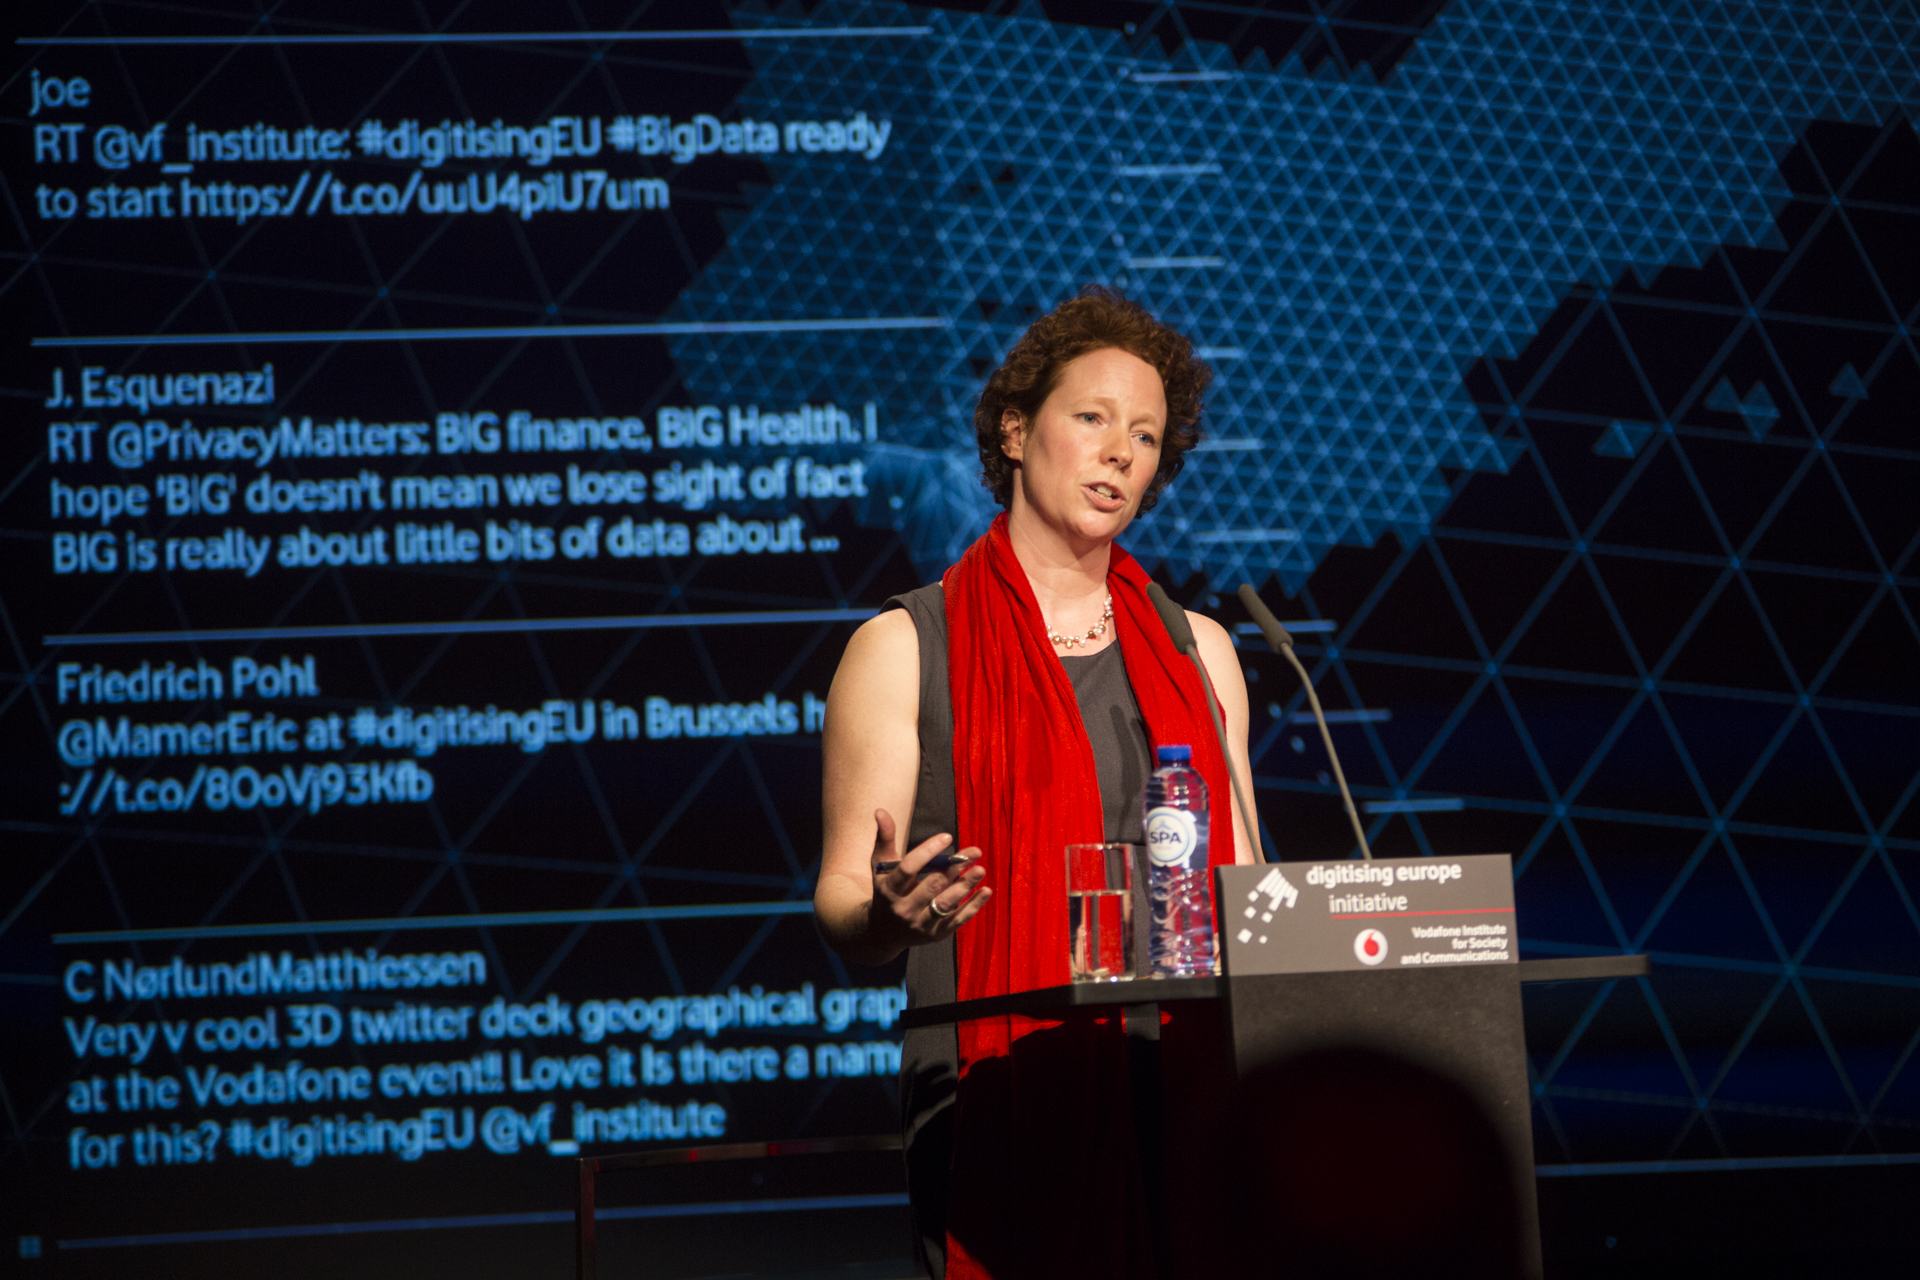 Linnet Taylor at DigitisingEU 2016 Brussels